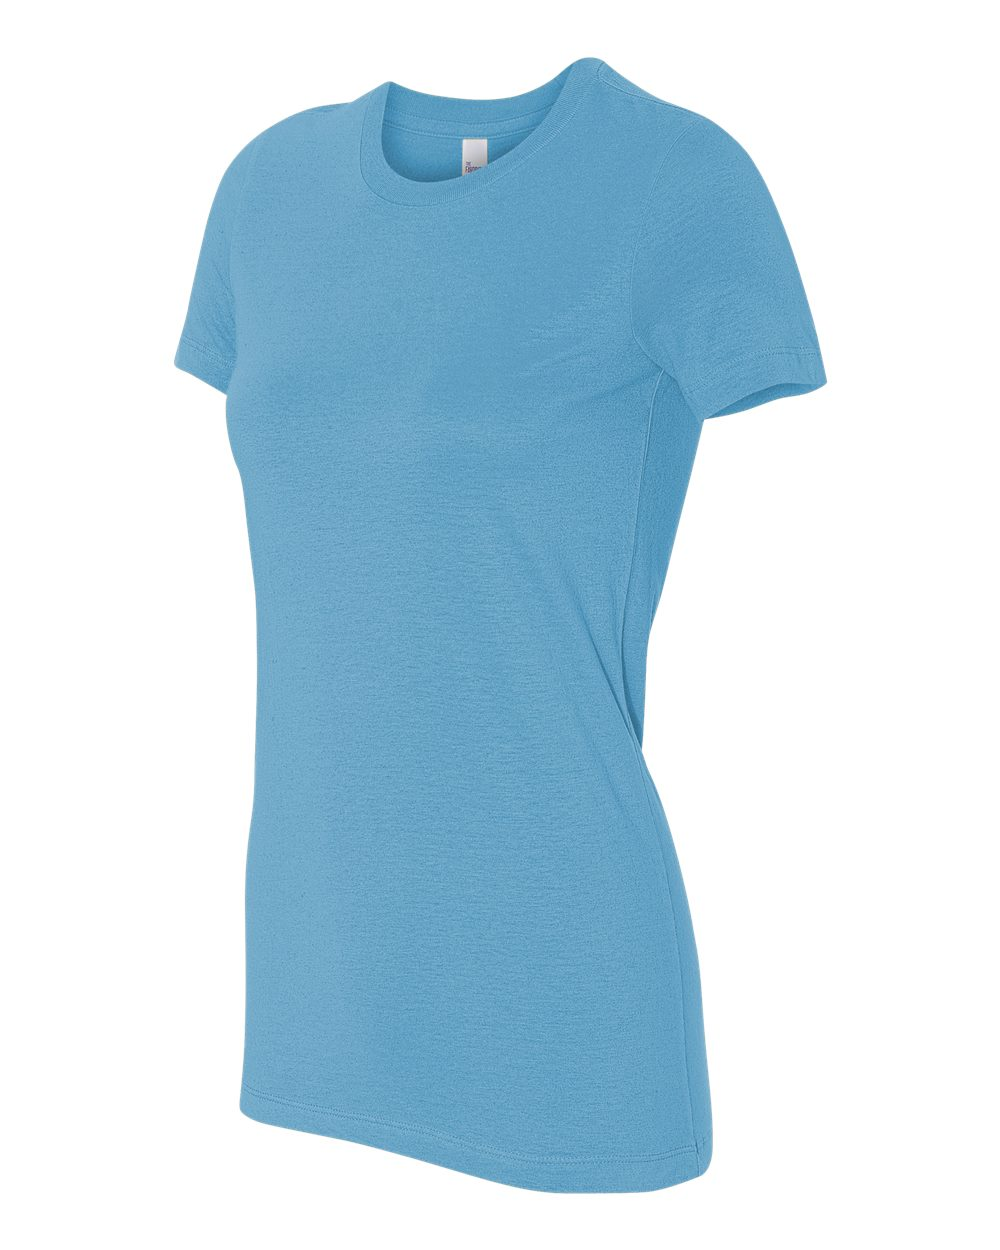 Bella-Canvas-Womens-The-Favorite-T-Shirt-6004-Size-S-2XL thumbnail 113